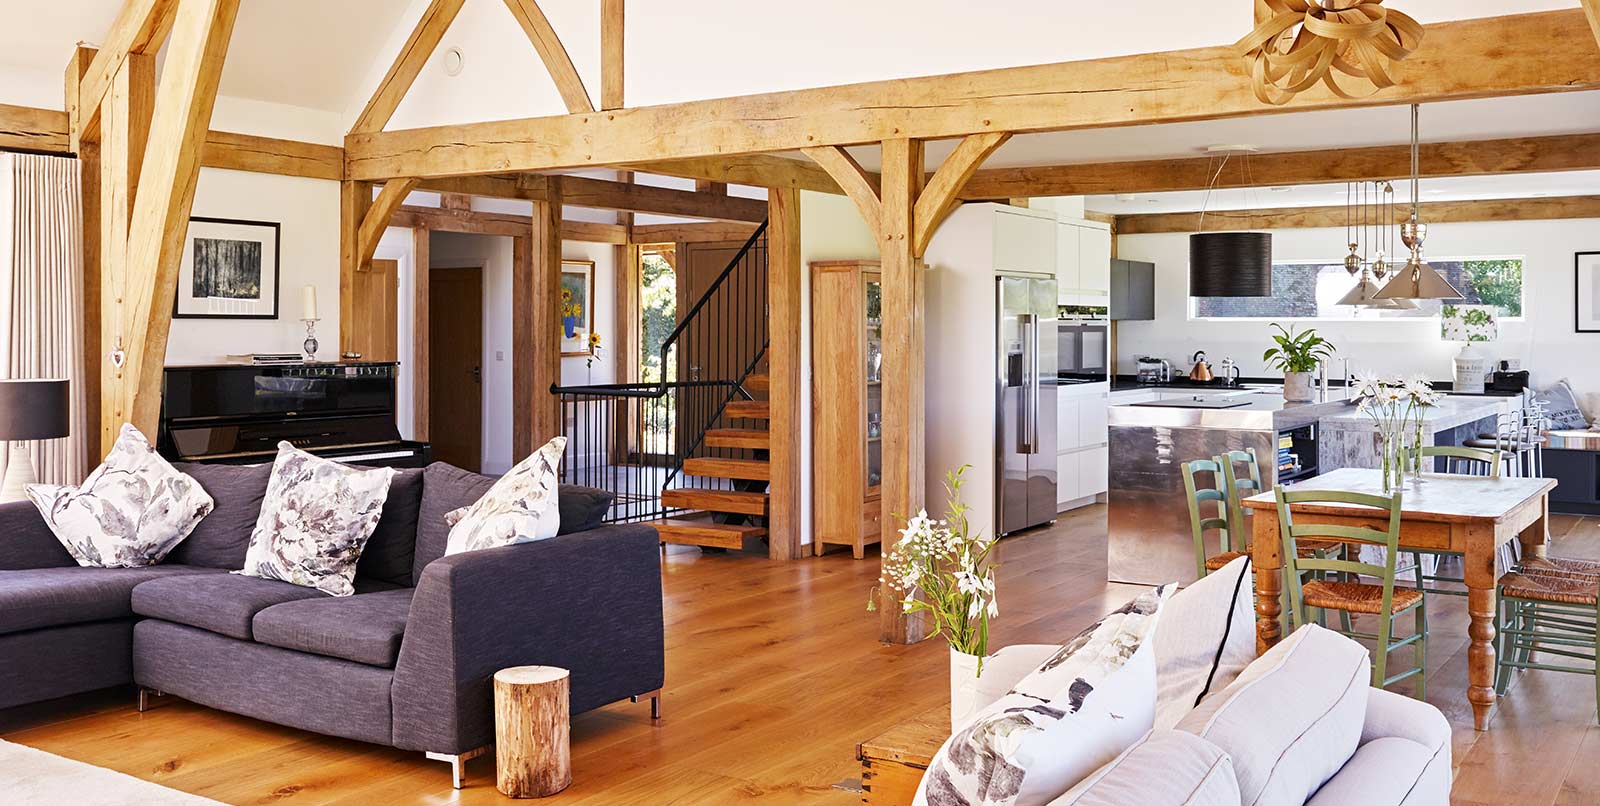 Exceptional oak frame design